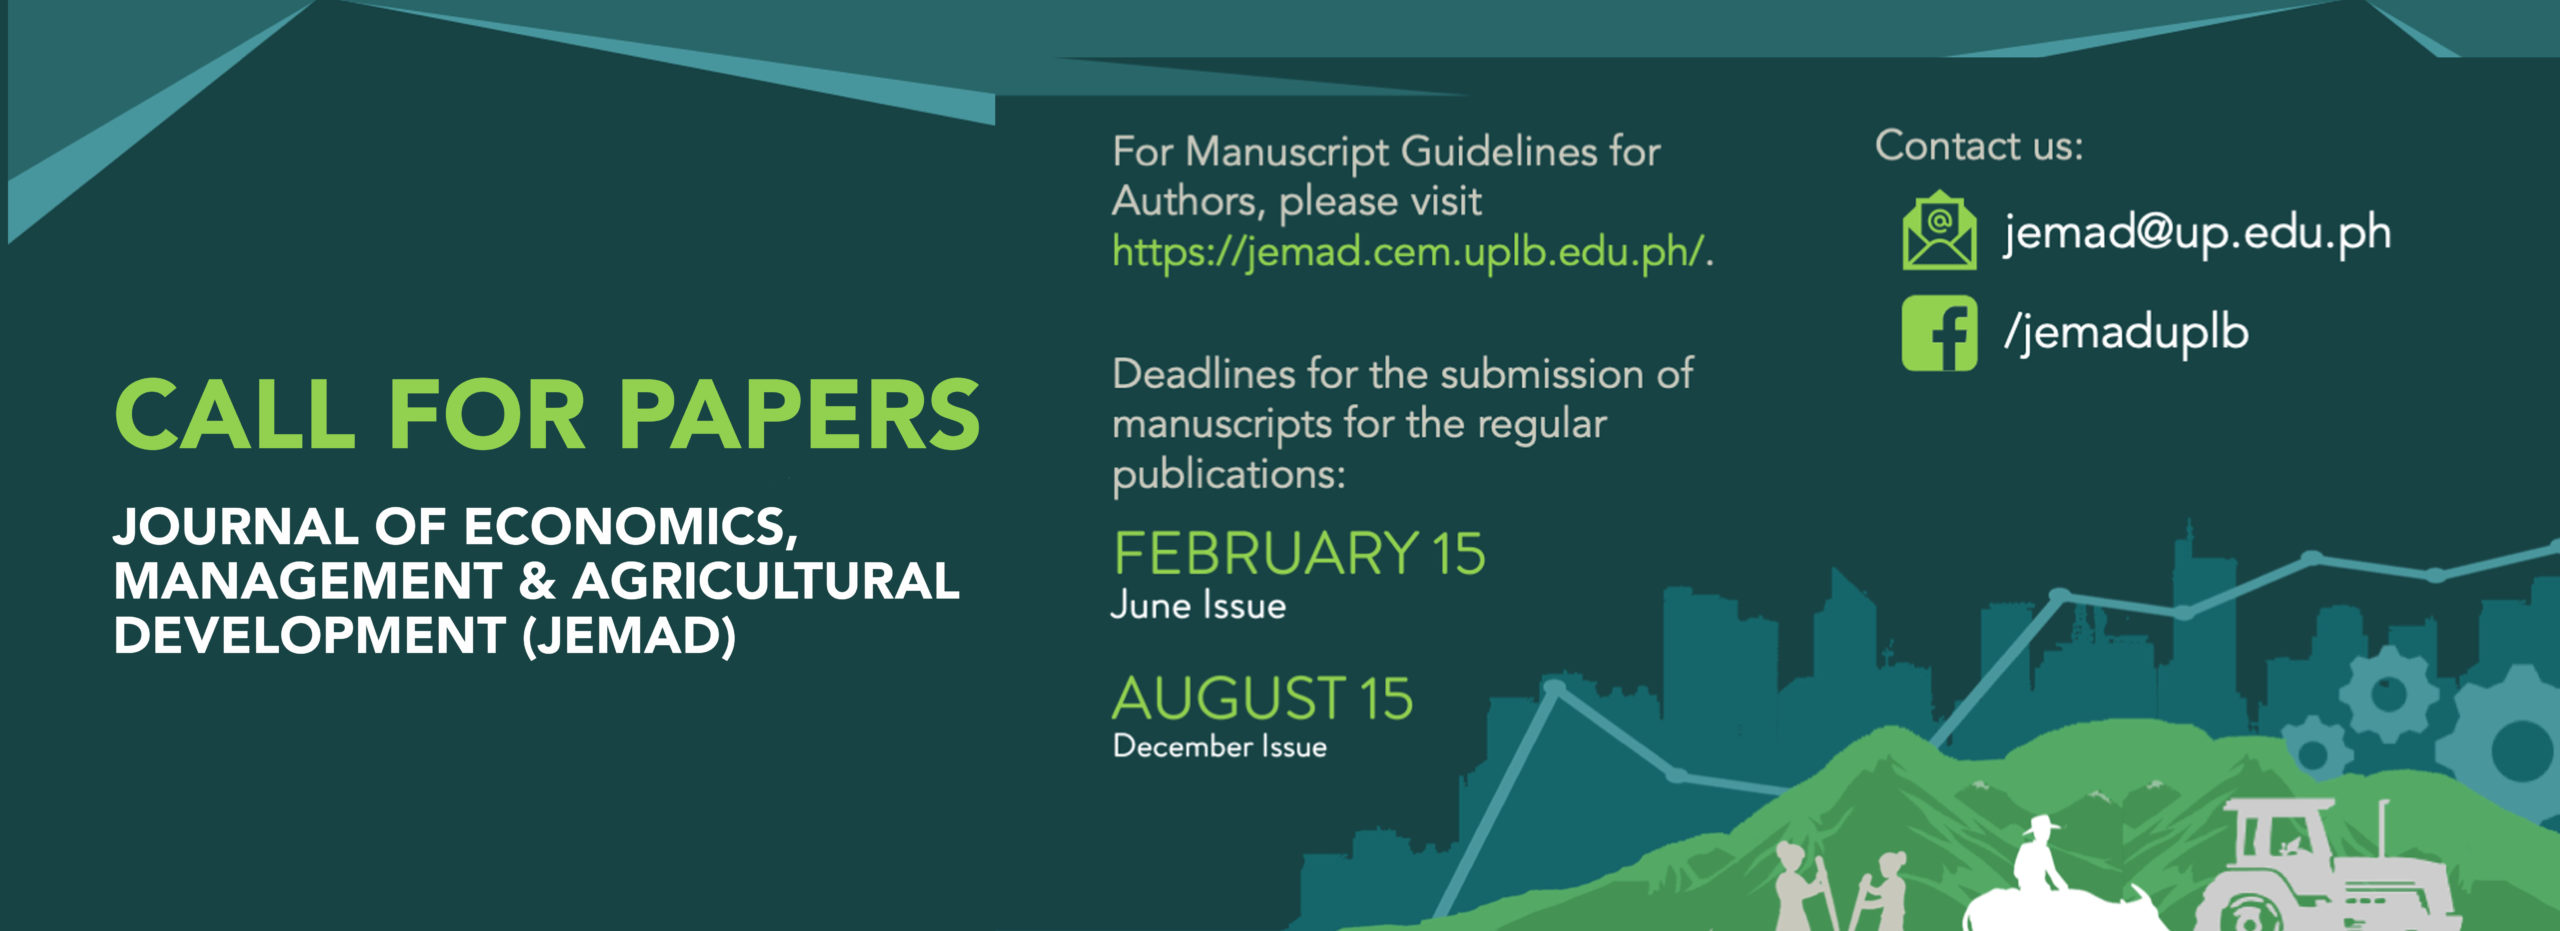 JEMAD: Call for Papers- December 2021 Issue